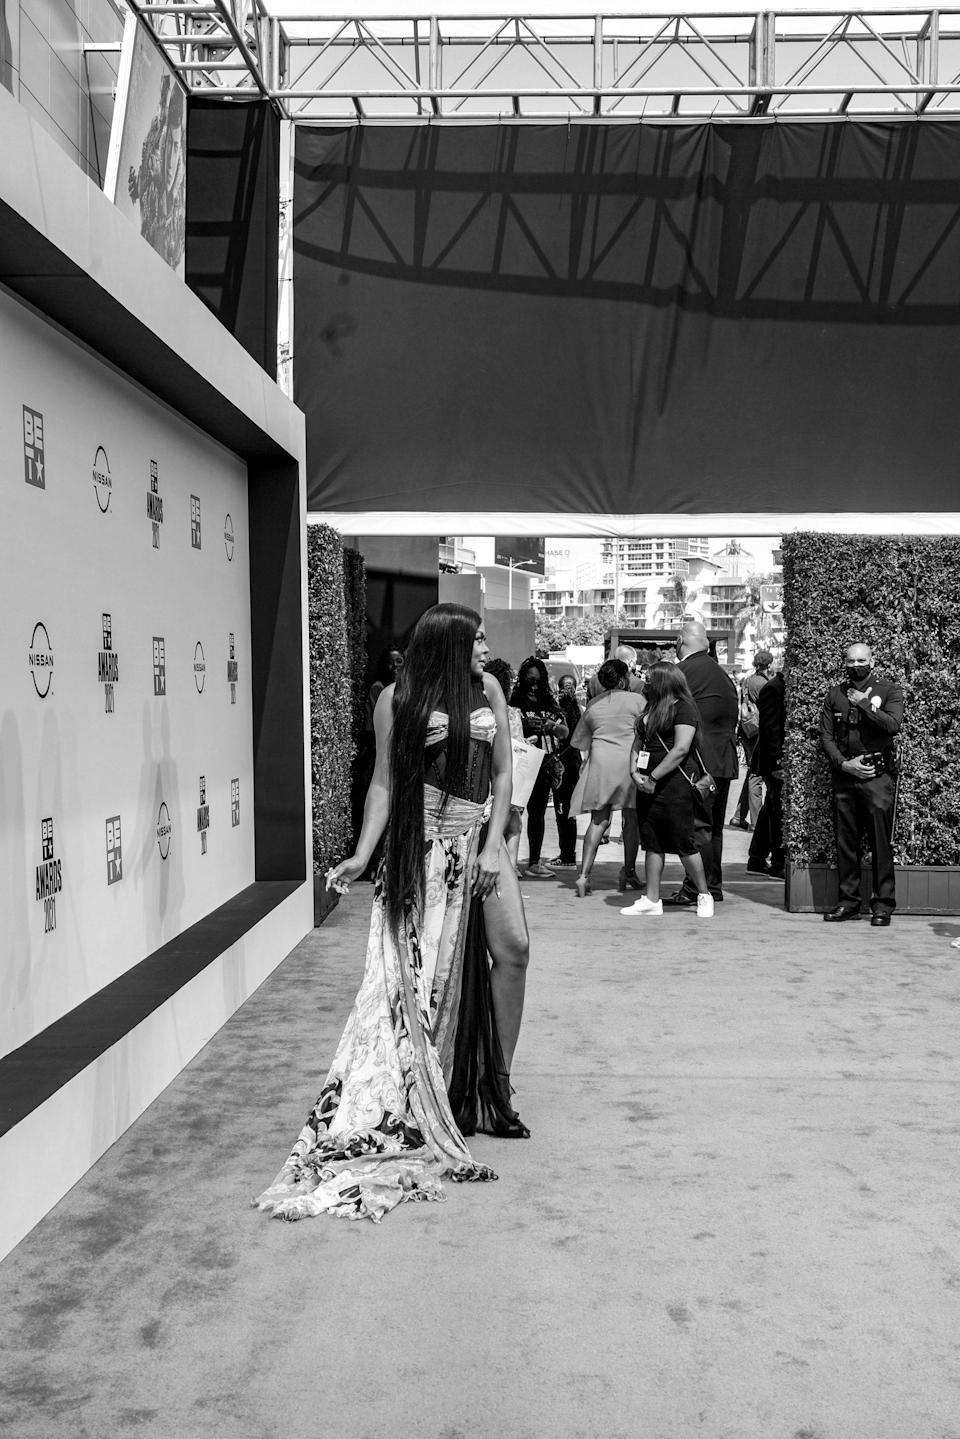 On the red carpet.